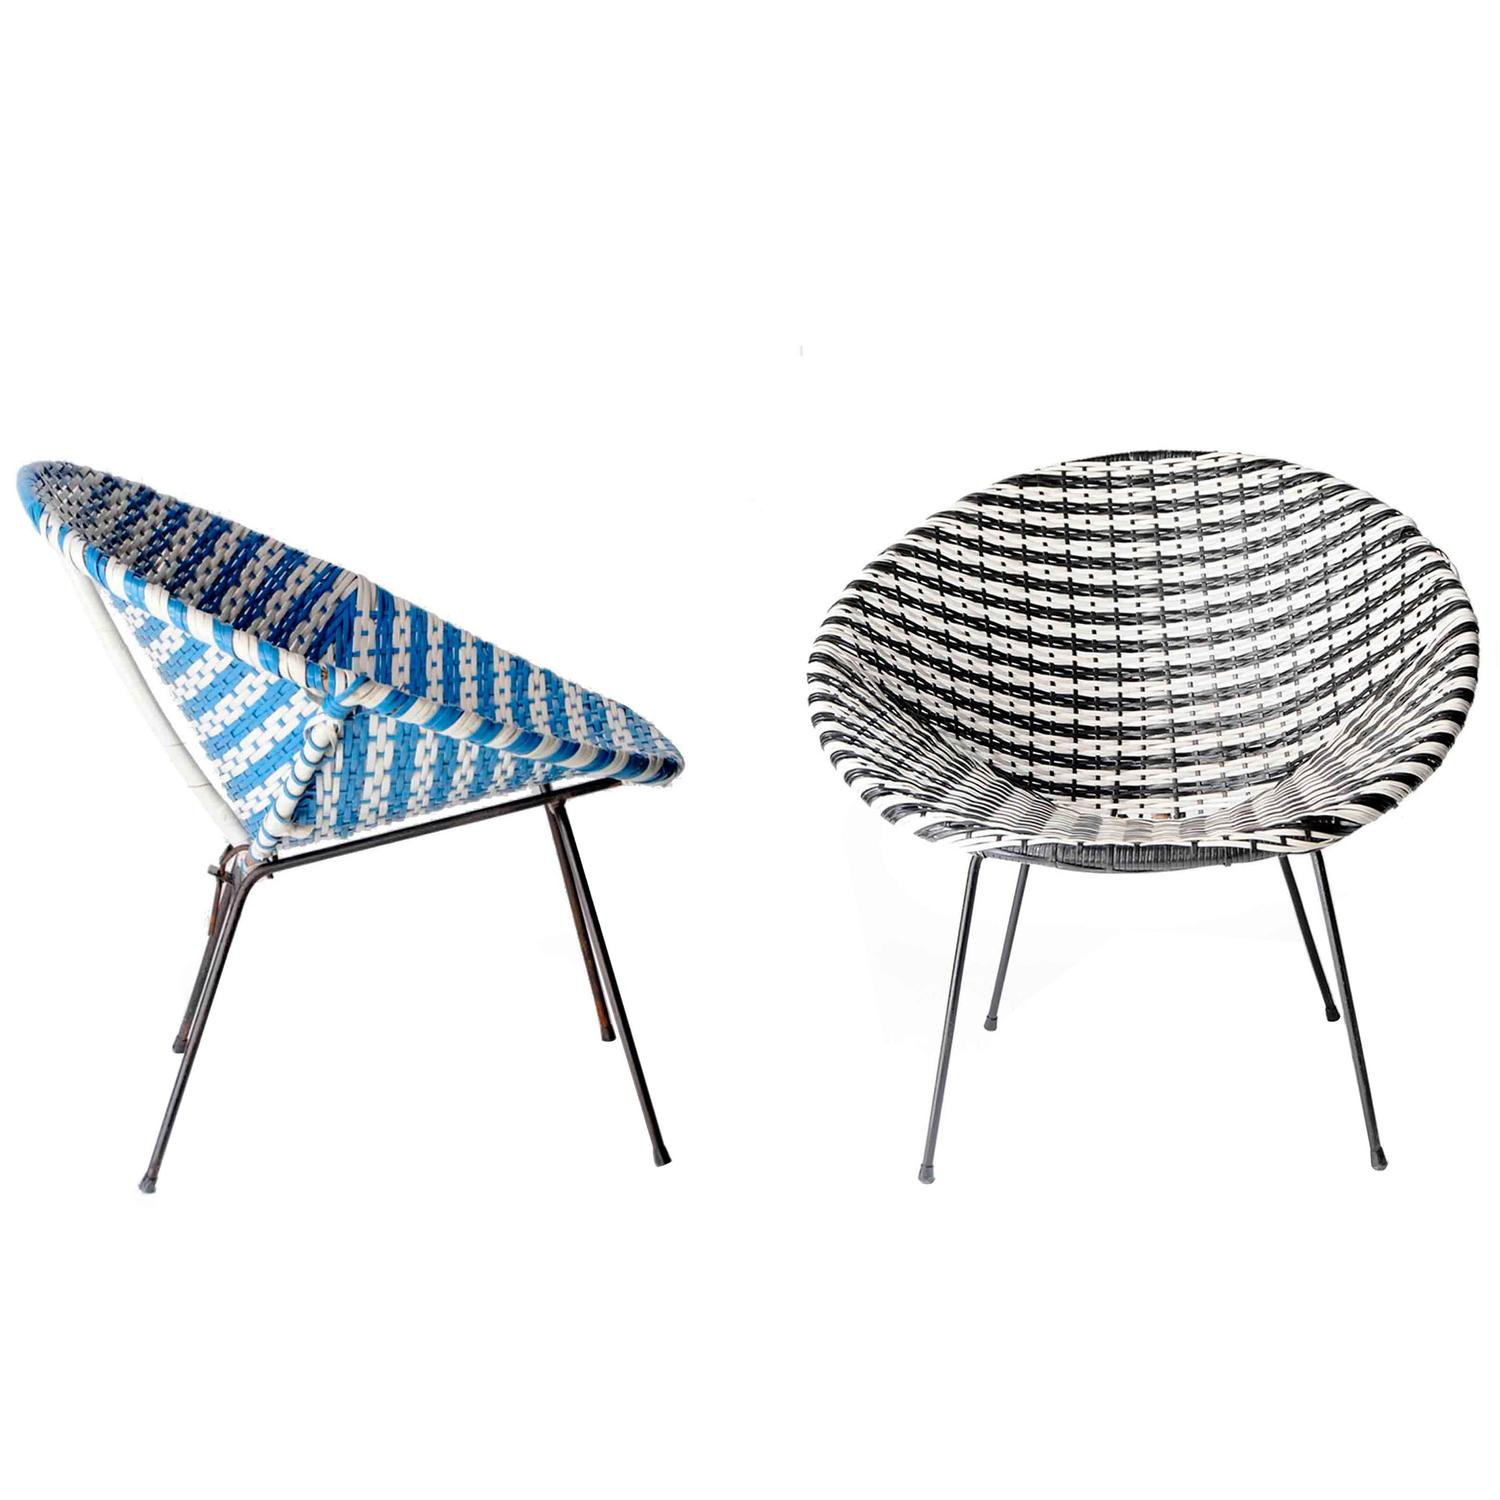 acapulco chair ergonomic used two mid century modern chairs for sale at 1stdibs